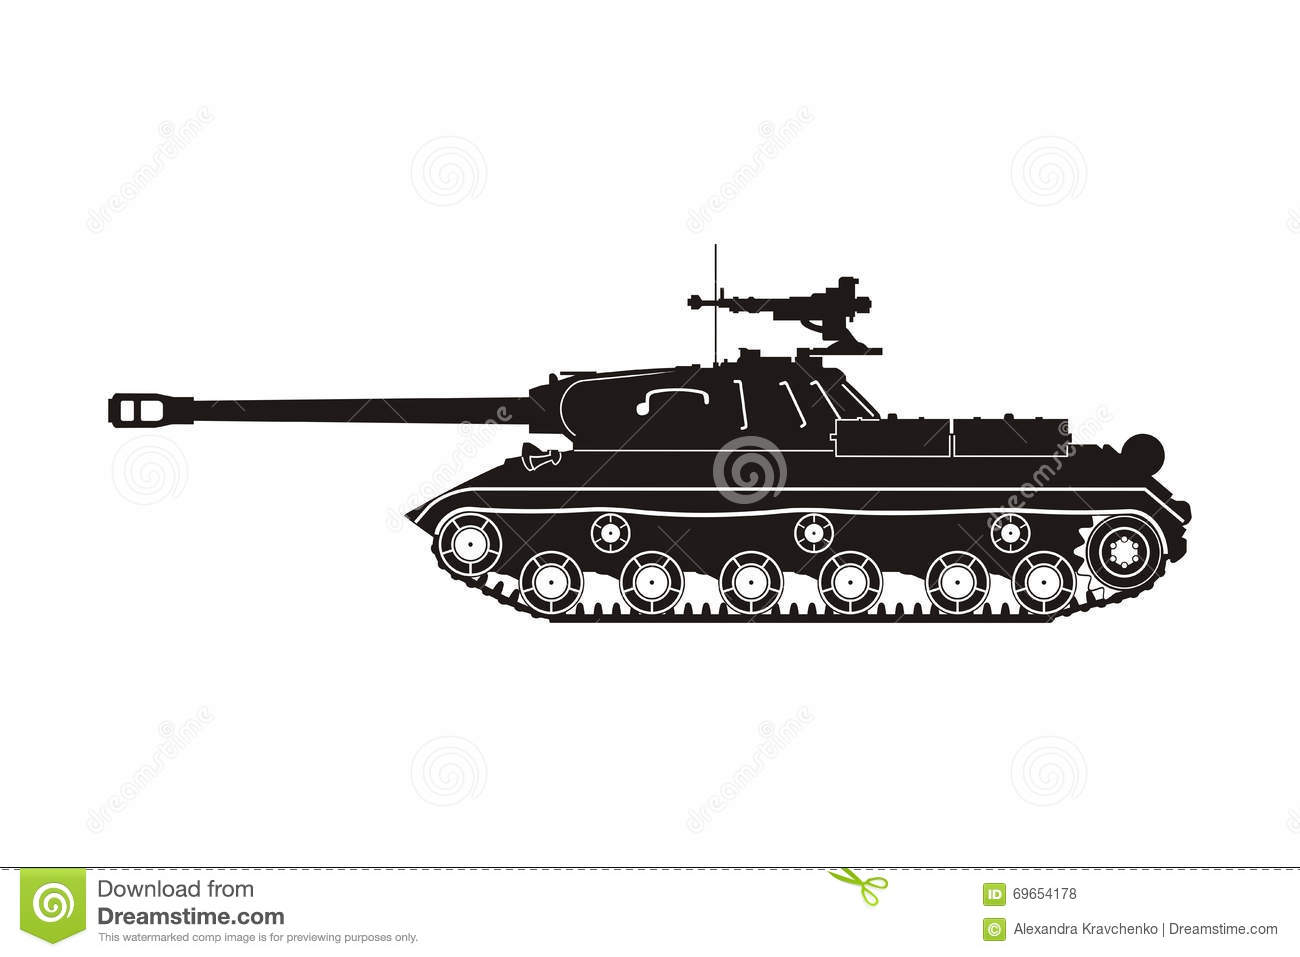 Tanque IS-3